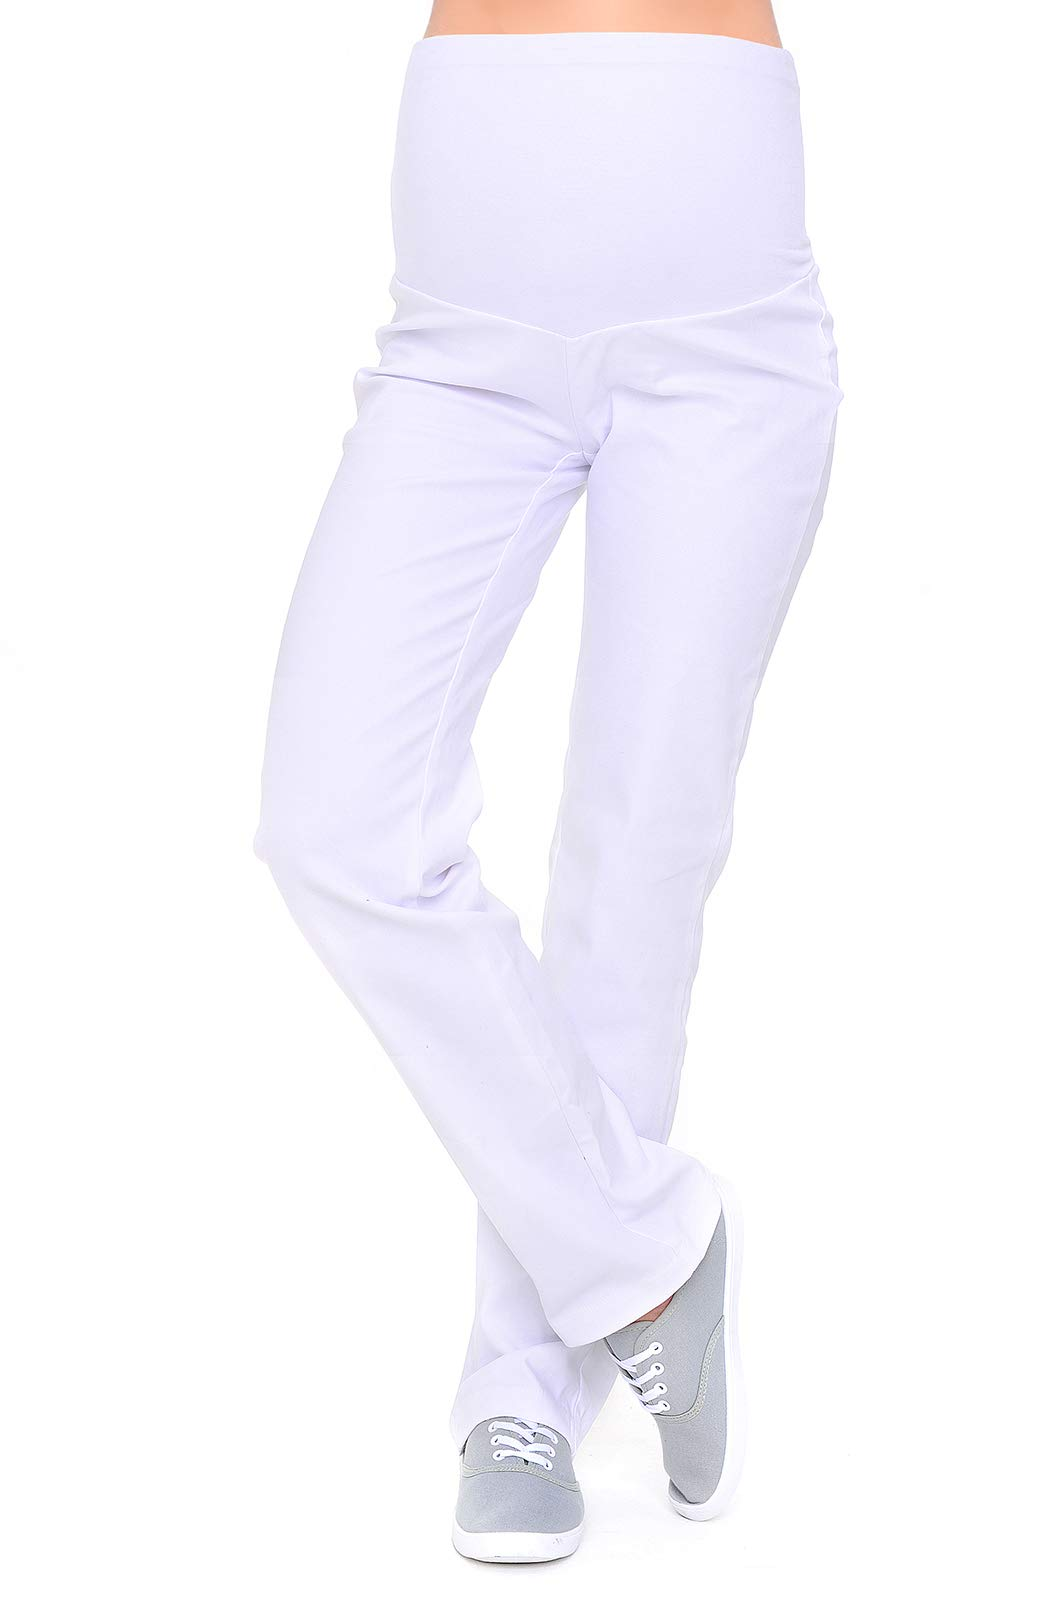 Mija - Maternity Trousers / Jeans classic straight cut Denim Over Bump 3014 (10, White)